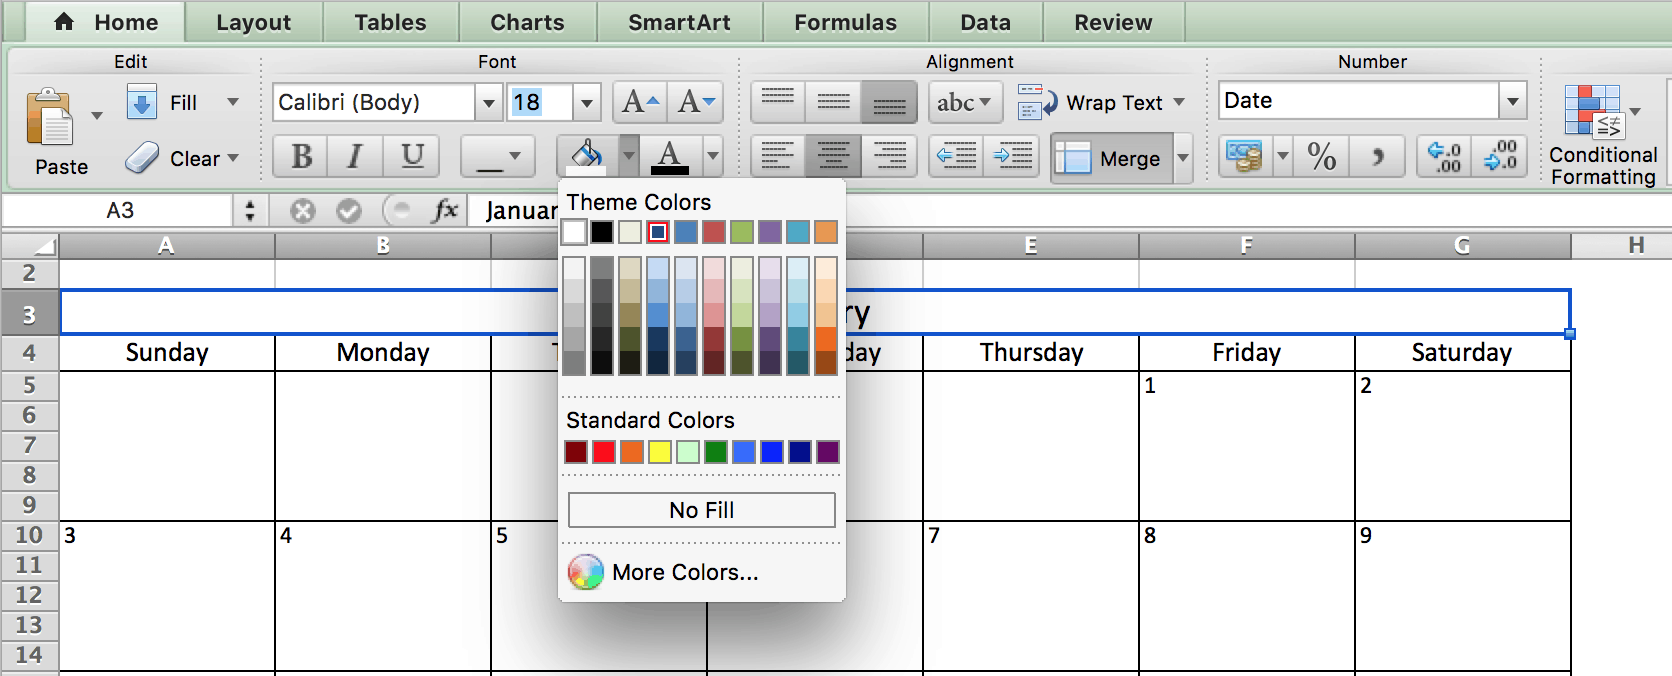 Ediblewildsus  Surprising Make A  Calendar In Excel Includes Free Template With Outstanding Choosing Colors  Calendar In Excel With Comely Project Monitoring Tools Excel Also How To Use Excel To Calculate In Addition Current Date Formula In Excel And Count Numbers In Excel As Well As Subtract Hours In Excel Additionally Excel Formula Indirect From Smartsheetcom With Ediblewildsus  Outstanding Make A  Calendar In Excel Includes Free Template With Comely Choosing Colors  Calendar In Excel And Surprising Project Monitoring Tools Excel Also How To Use Excel To Calculate In Addition Current Date Formula In Excel From Smartsheetcom